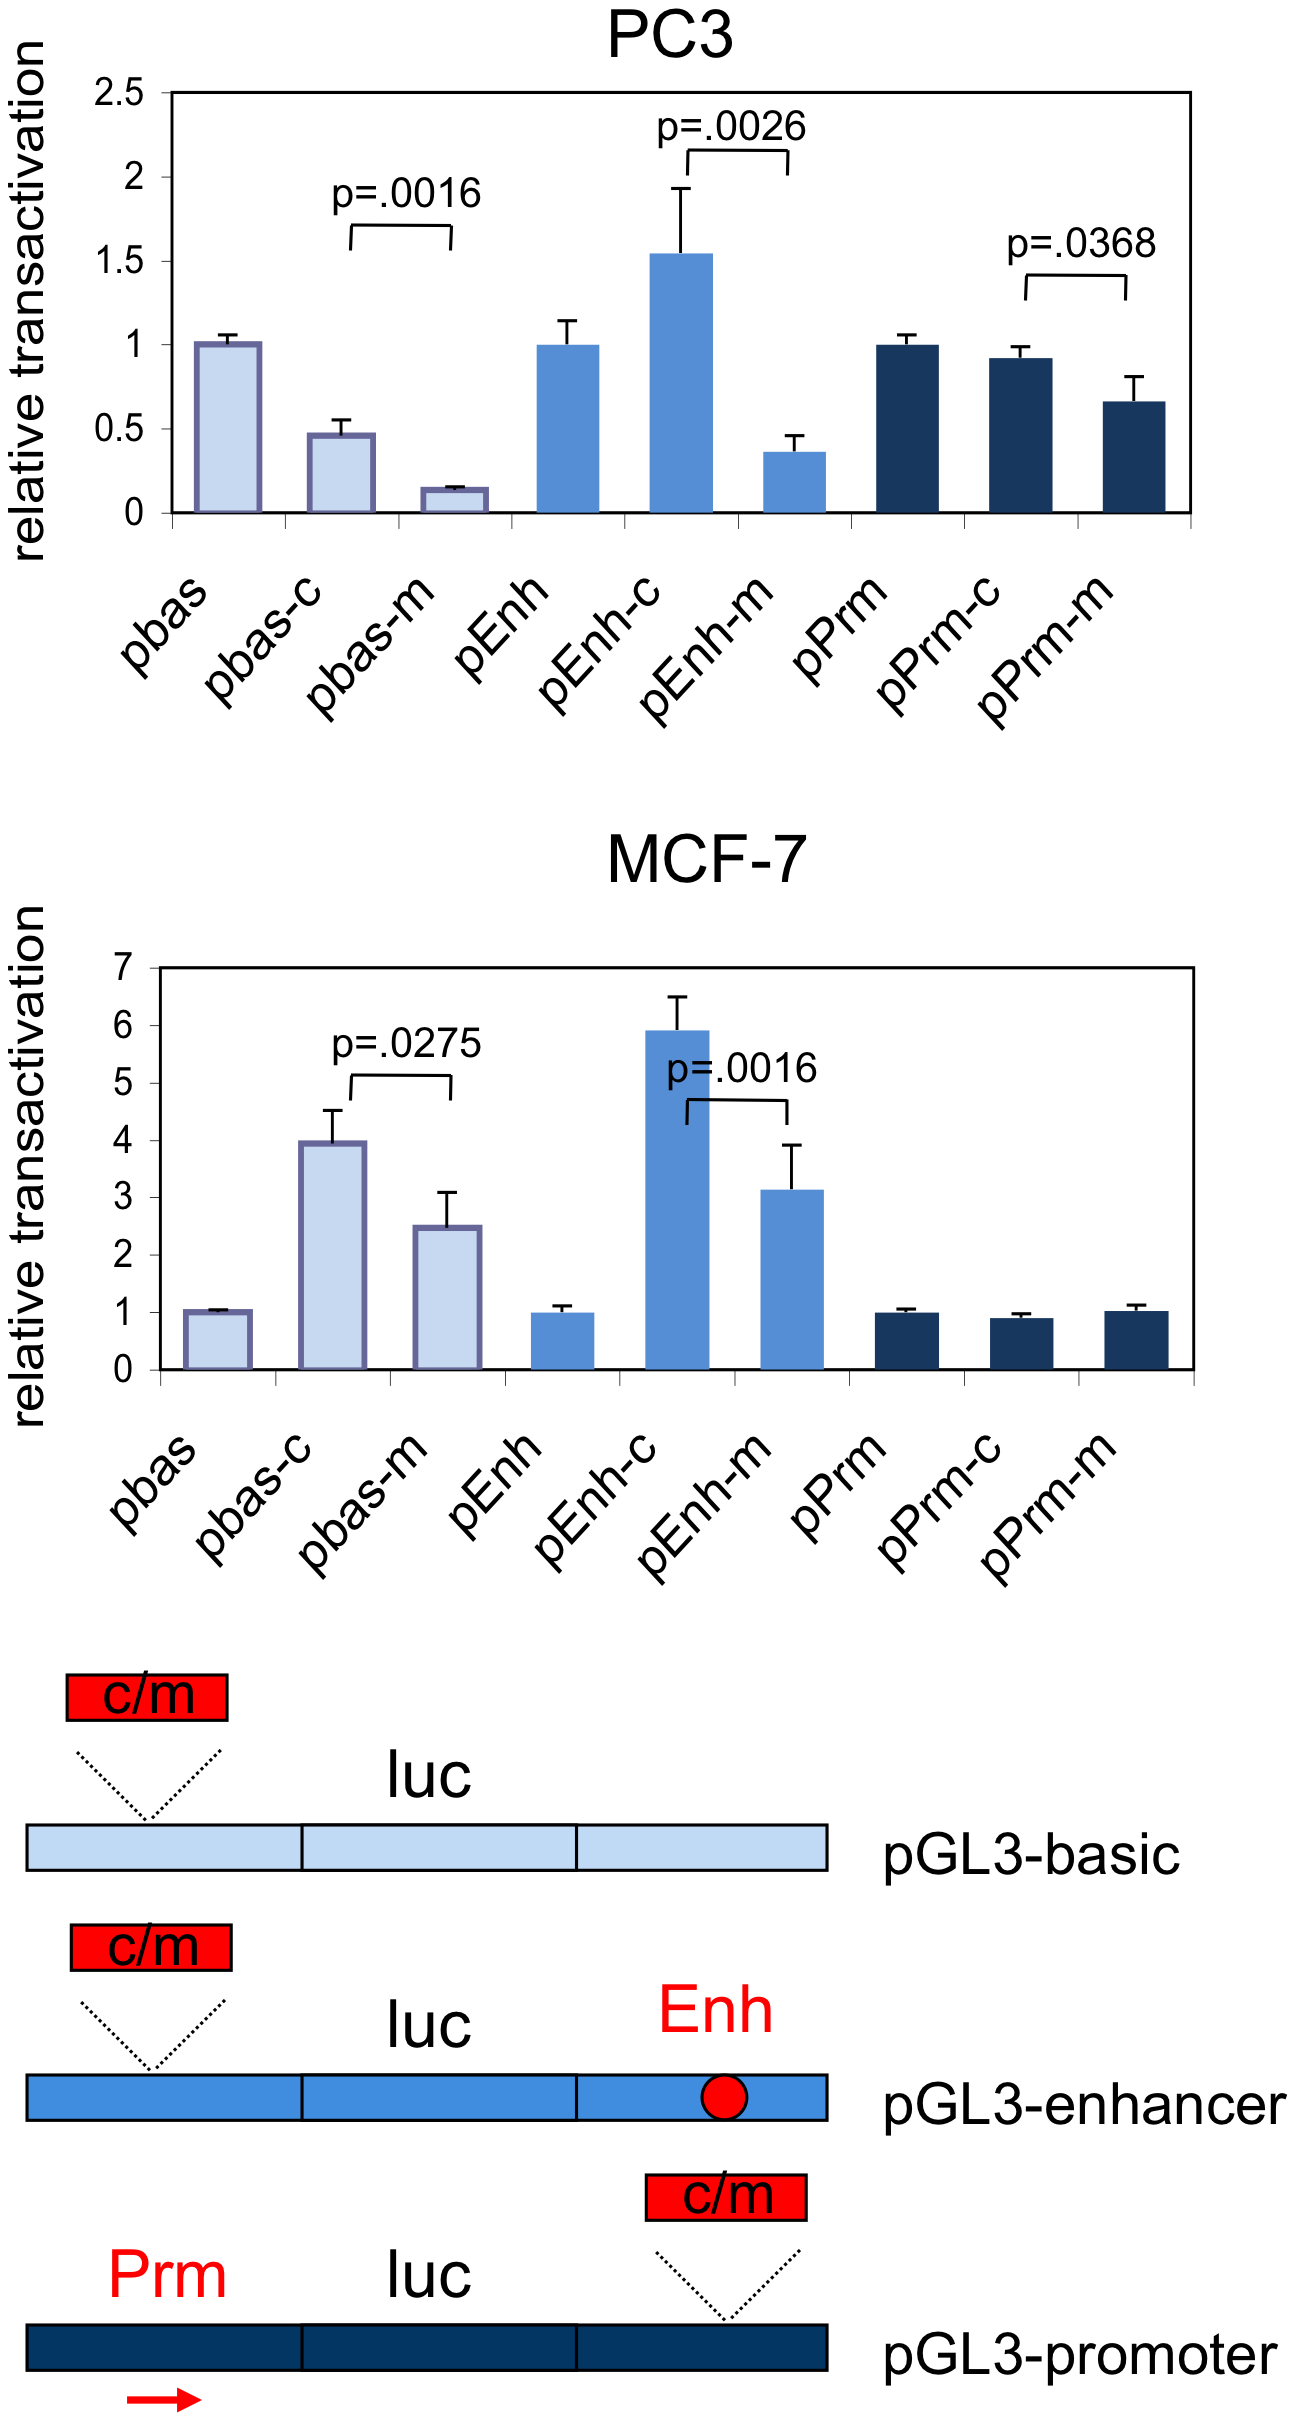 Relative transcriptional activation by the common and minor alleles of rs378854.